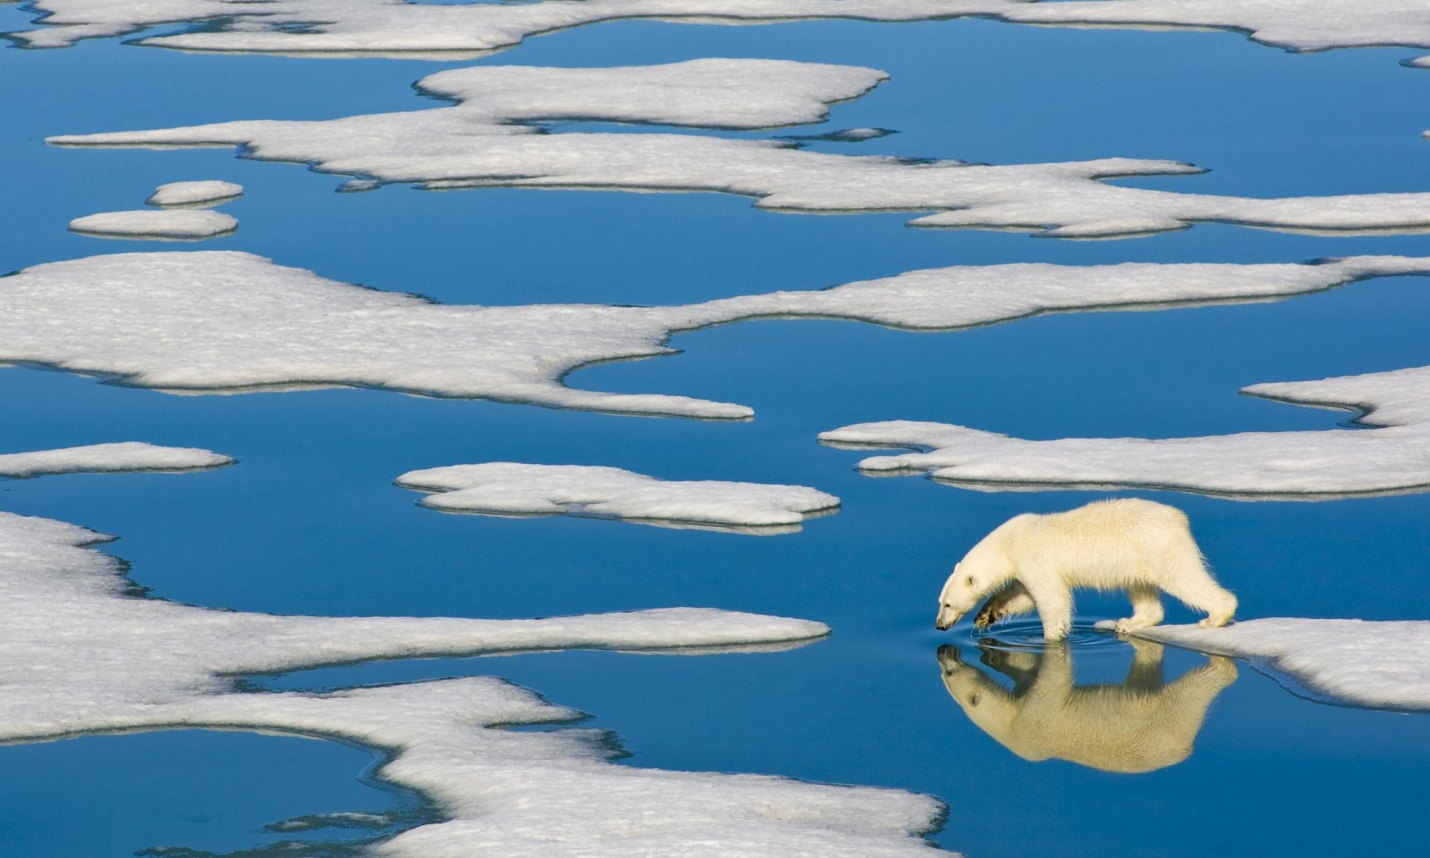 A polar bear in the arctic wilderness of the Svalbard Islands in the Arctic Ocean. Photograph: Ralph Lee Hopkins/Corbis